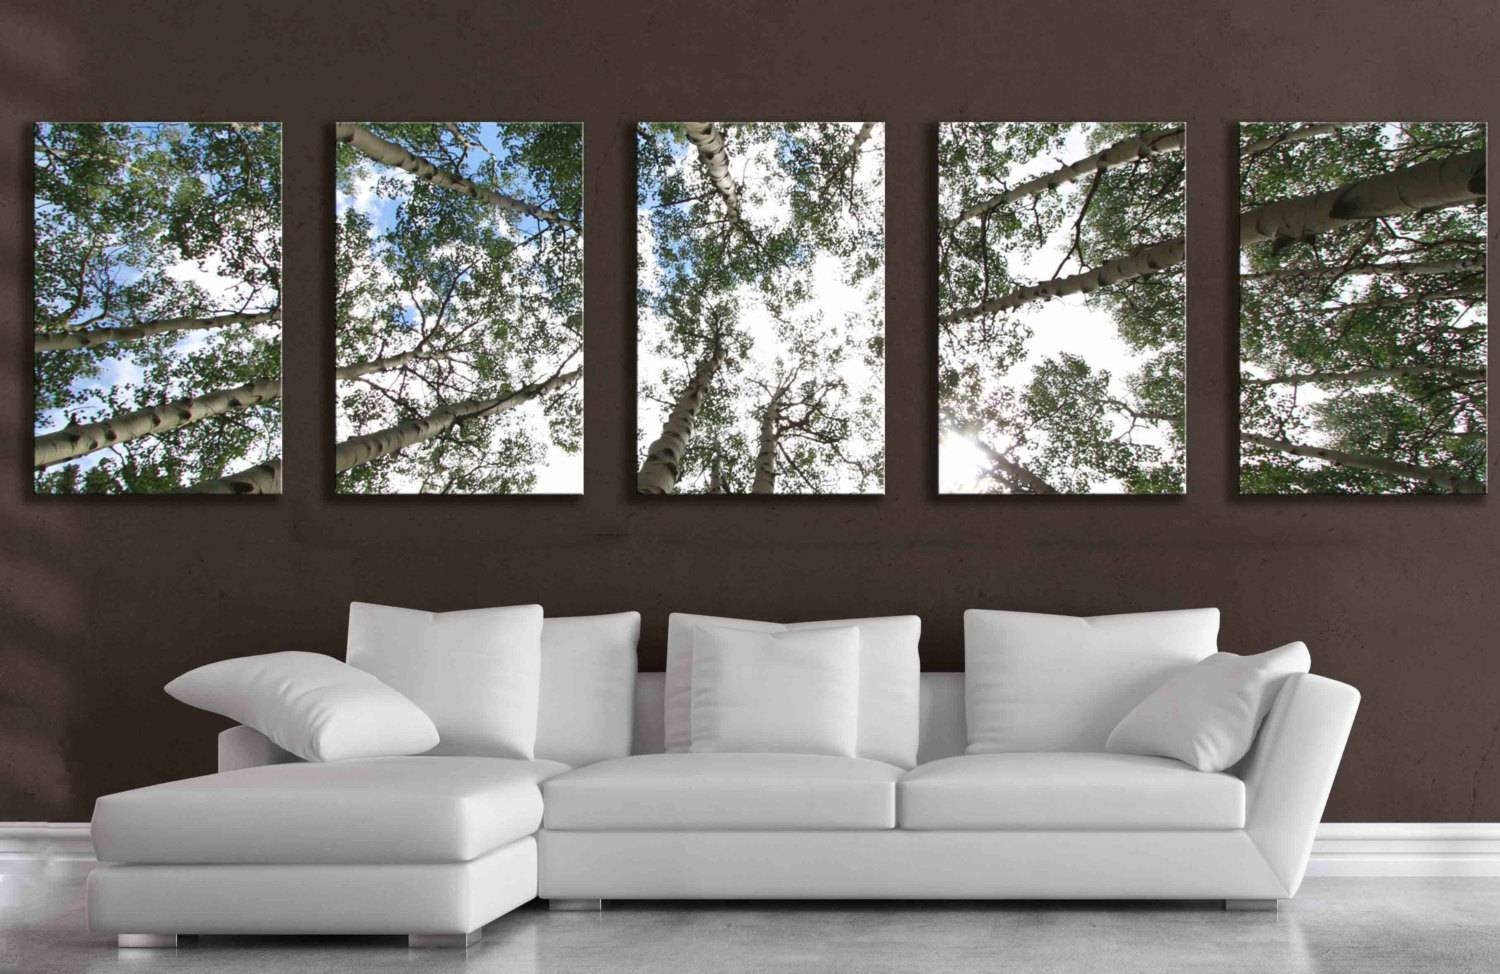 Large 5 Panel Wall Art Aspen Tree Canvas Decor Five Multipiece Intended For Most Up To Date Aspen Tree Wall Art (View 11 of 20)